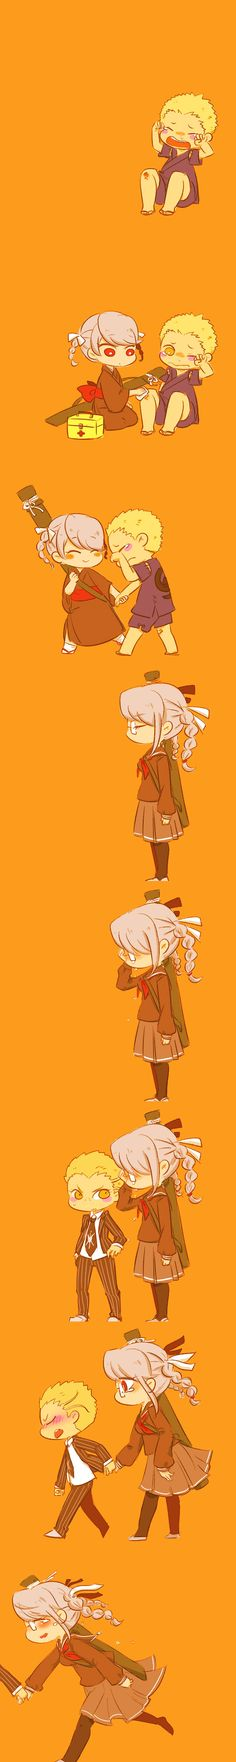 Fuyuhiko and Peko are such cuties together